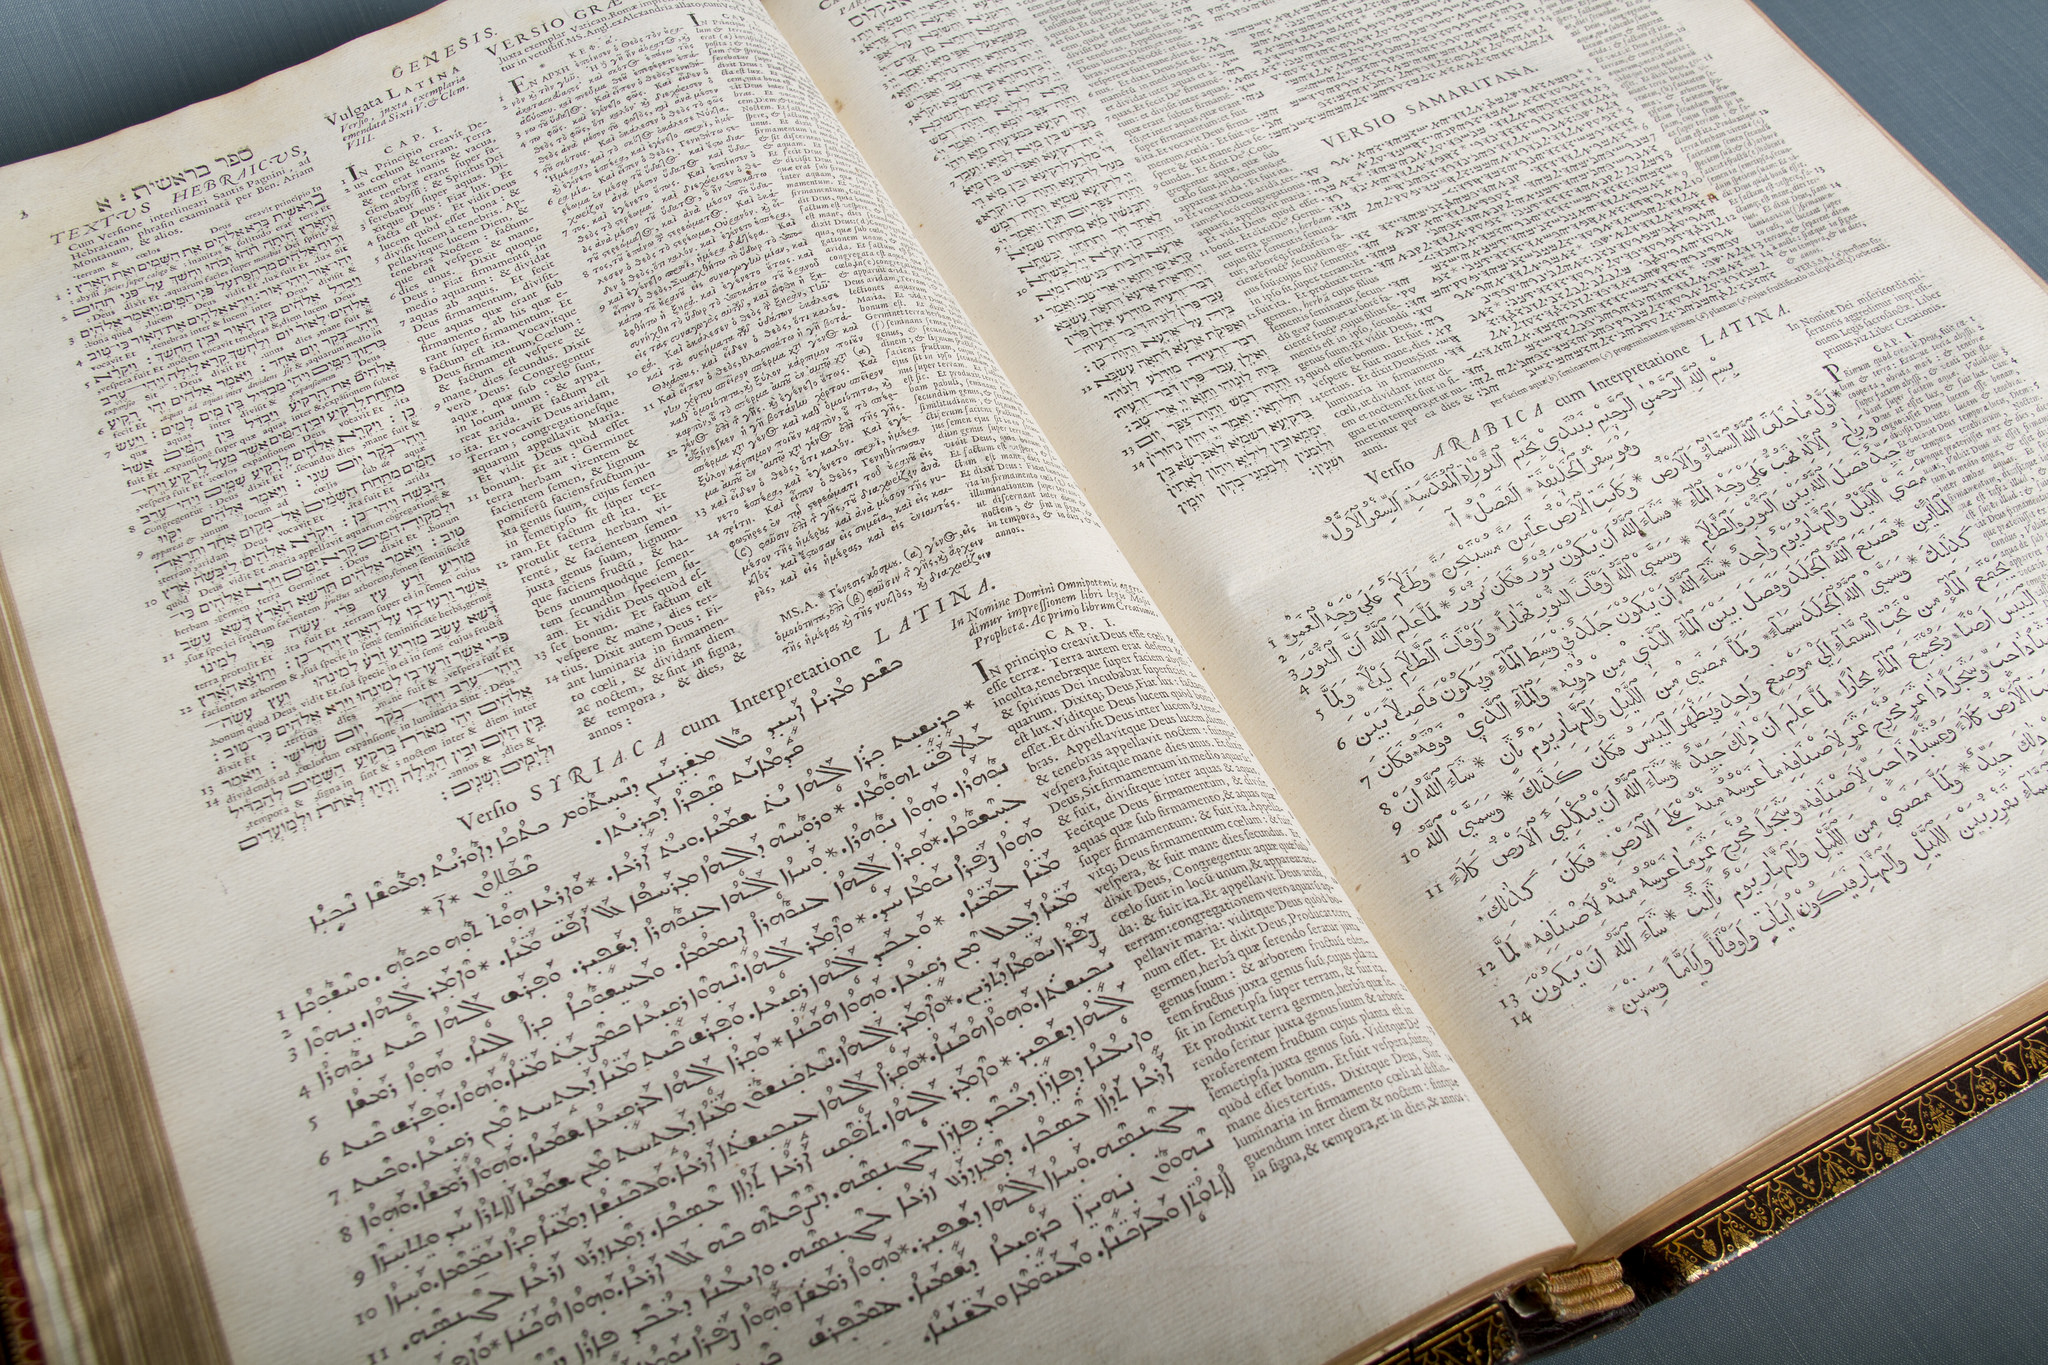 Walton's Polyglot Bible, Volume 1, 1654. Pages showing text from the book of Genesis in multiple languages.